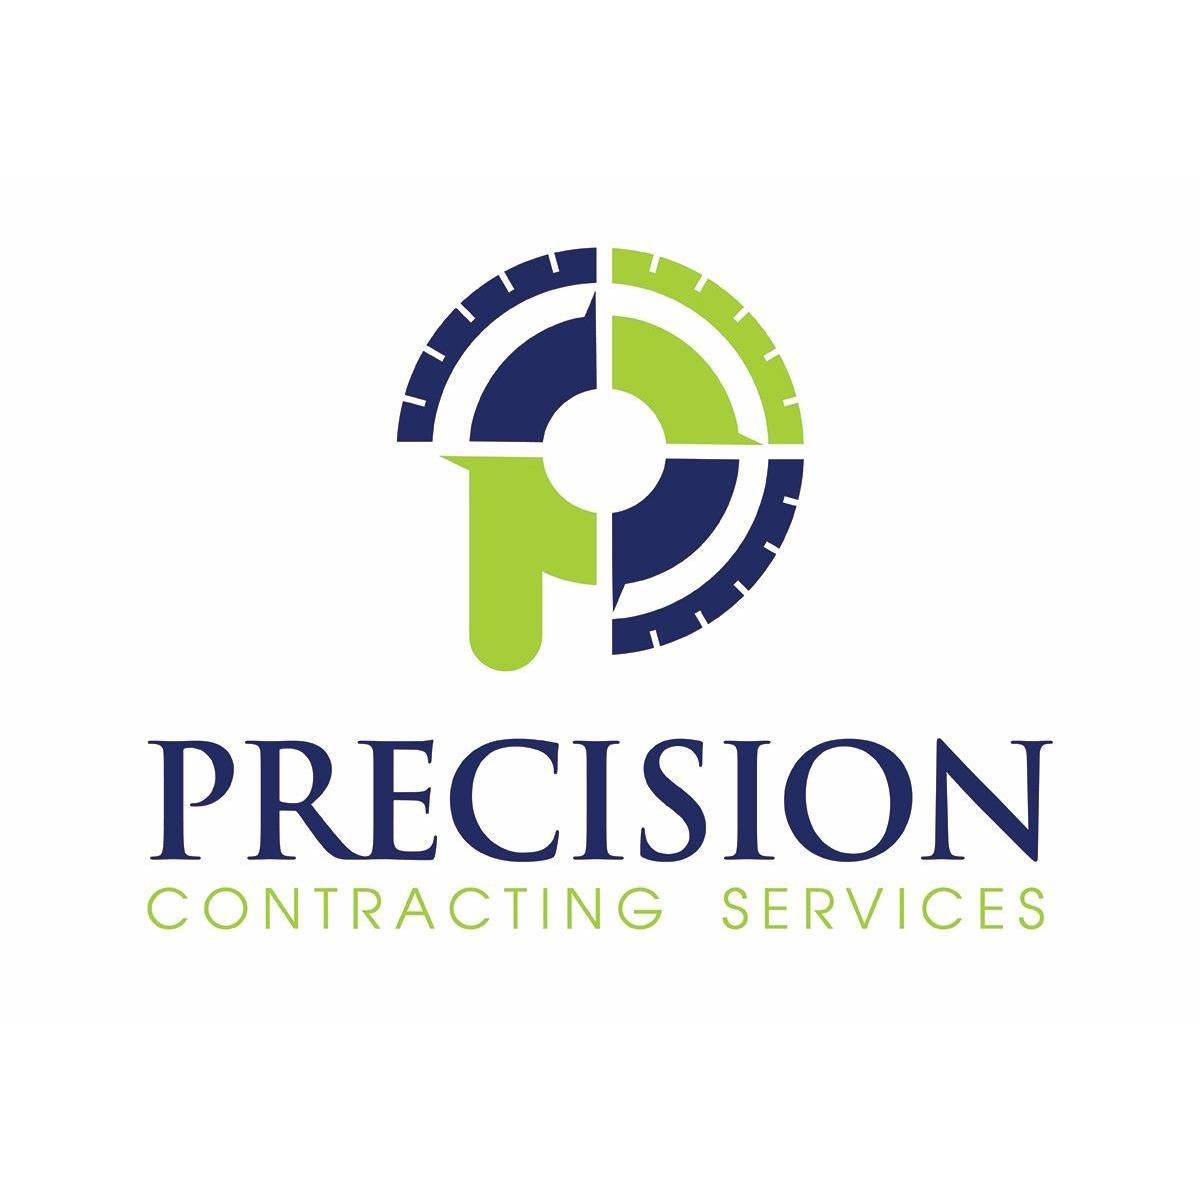 Precision Contracting Services - Downingtown, PA - Siding Contractors